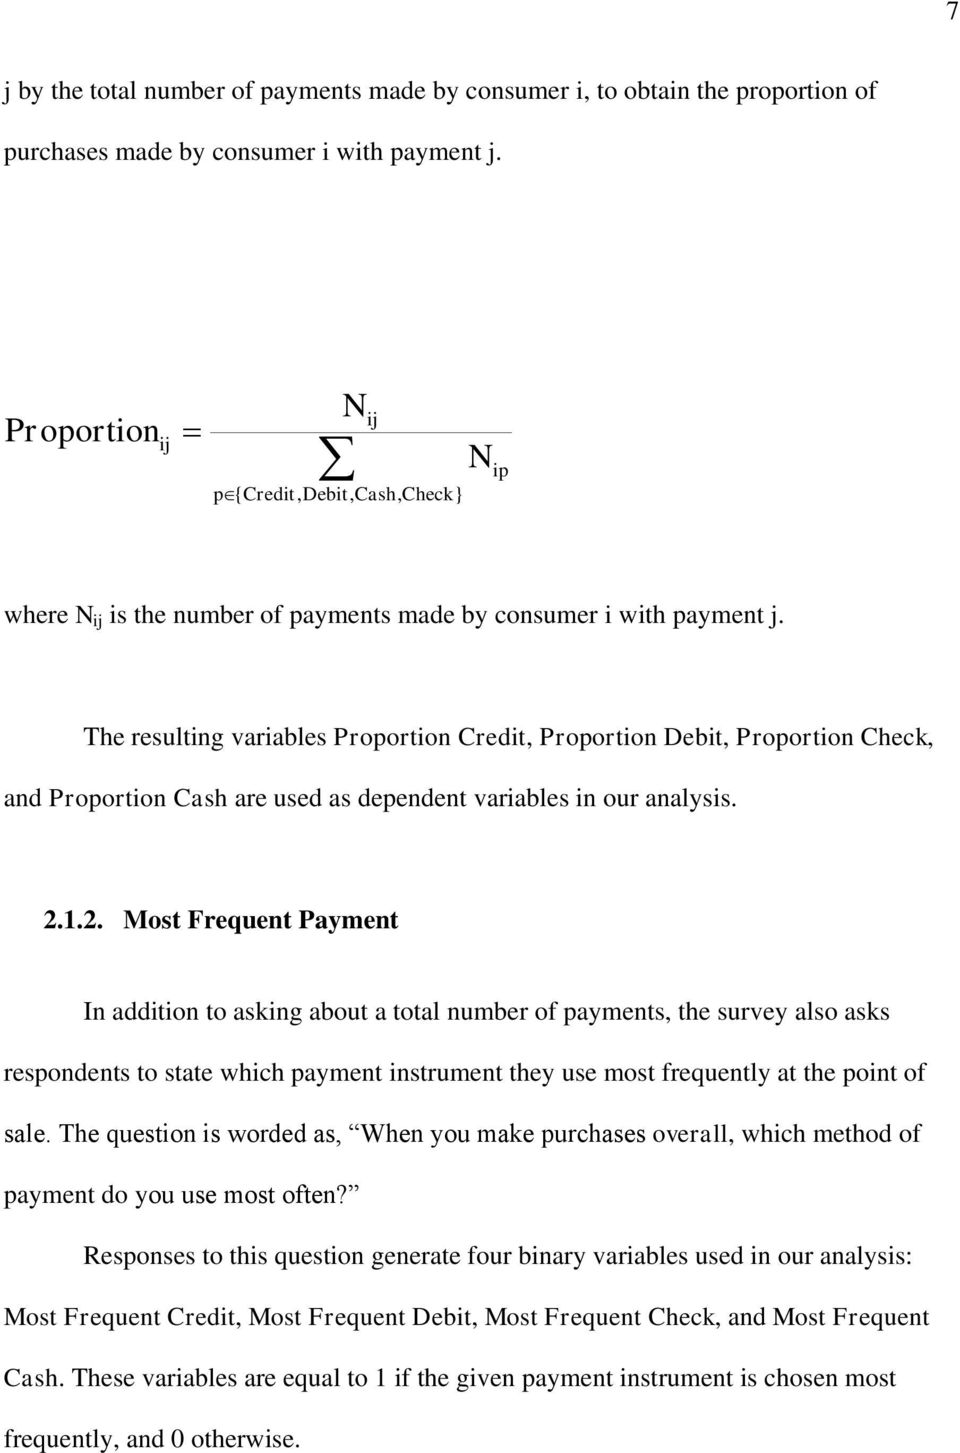 The resulting variables Proportion Credit, Proportion Debit, Proportion Check, and Proportion Cash are used as dependent variables in our analysis. 2.